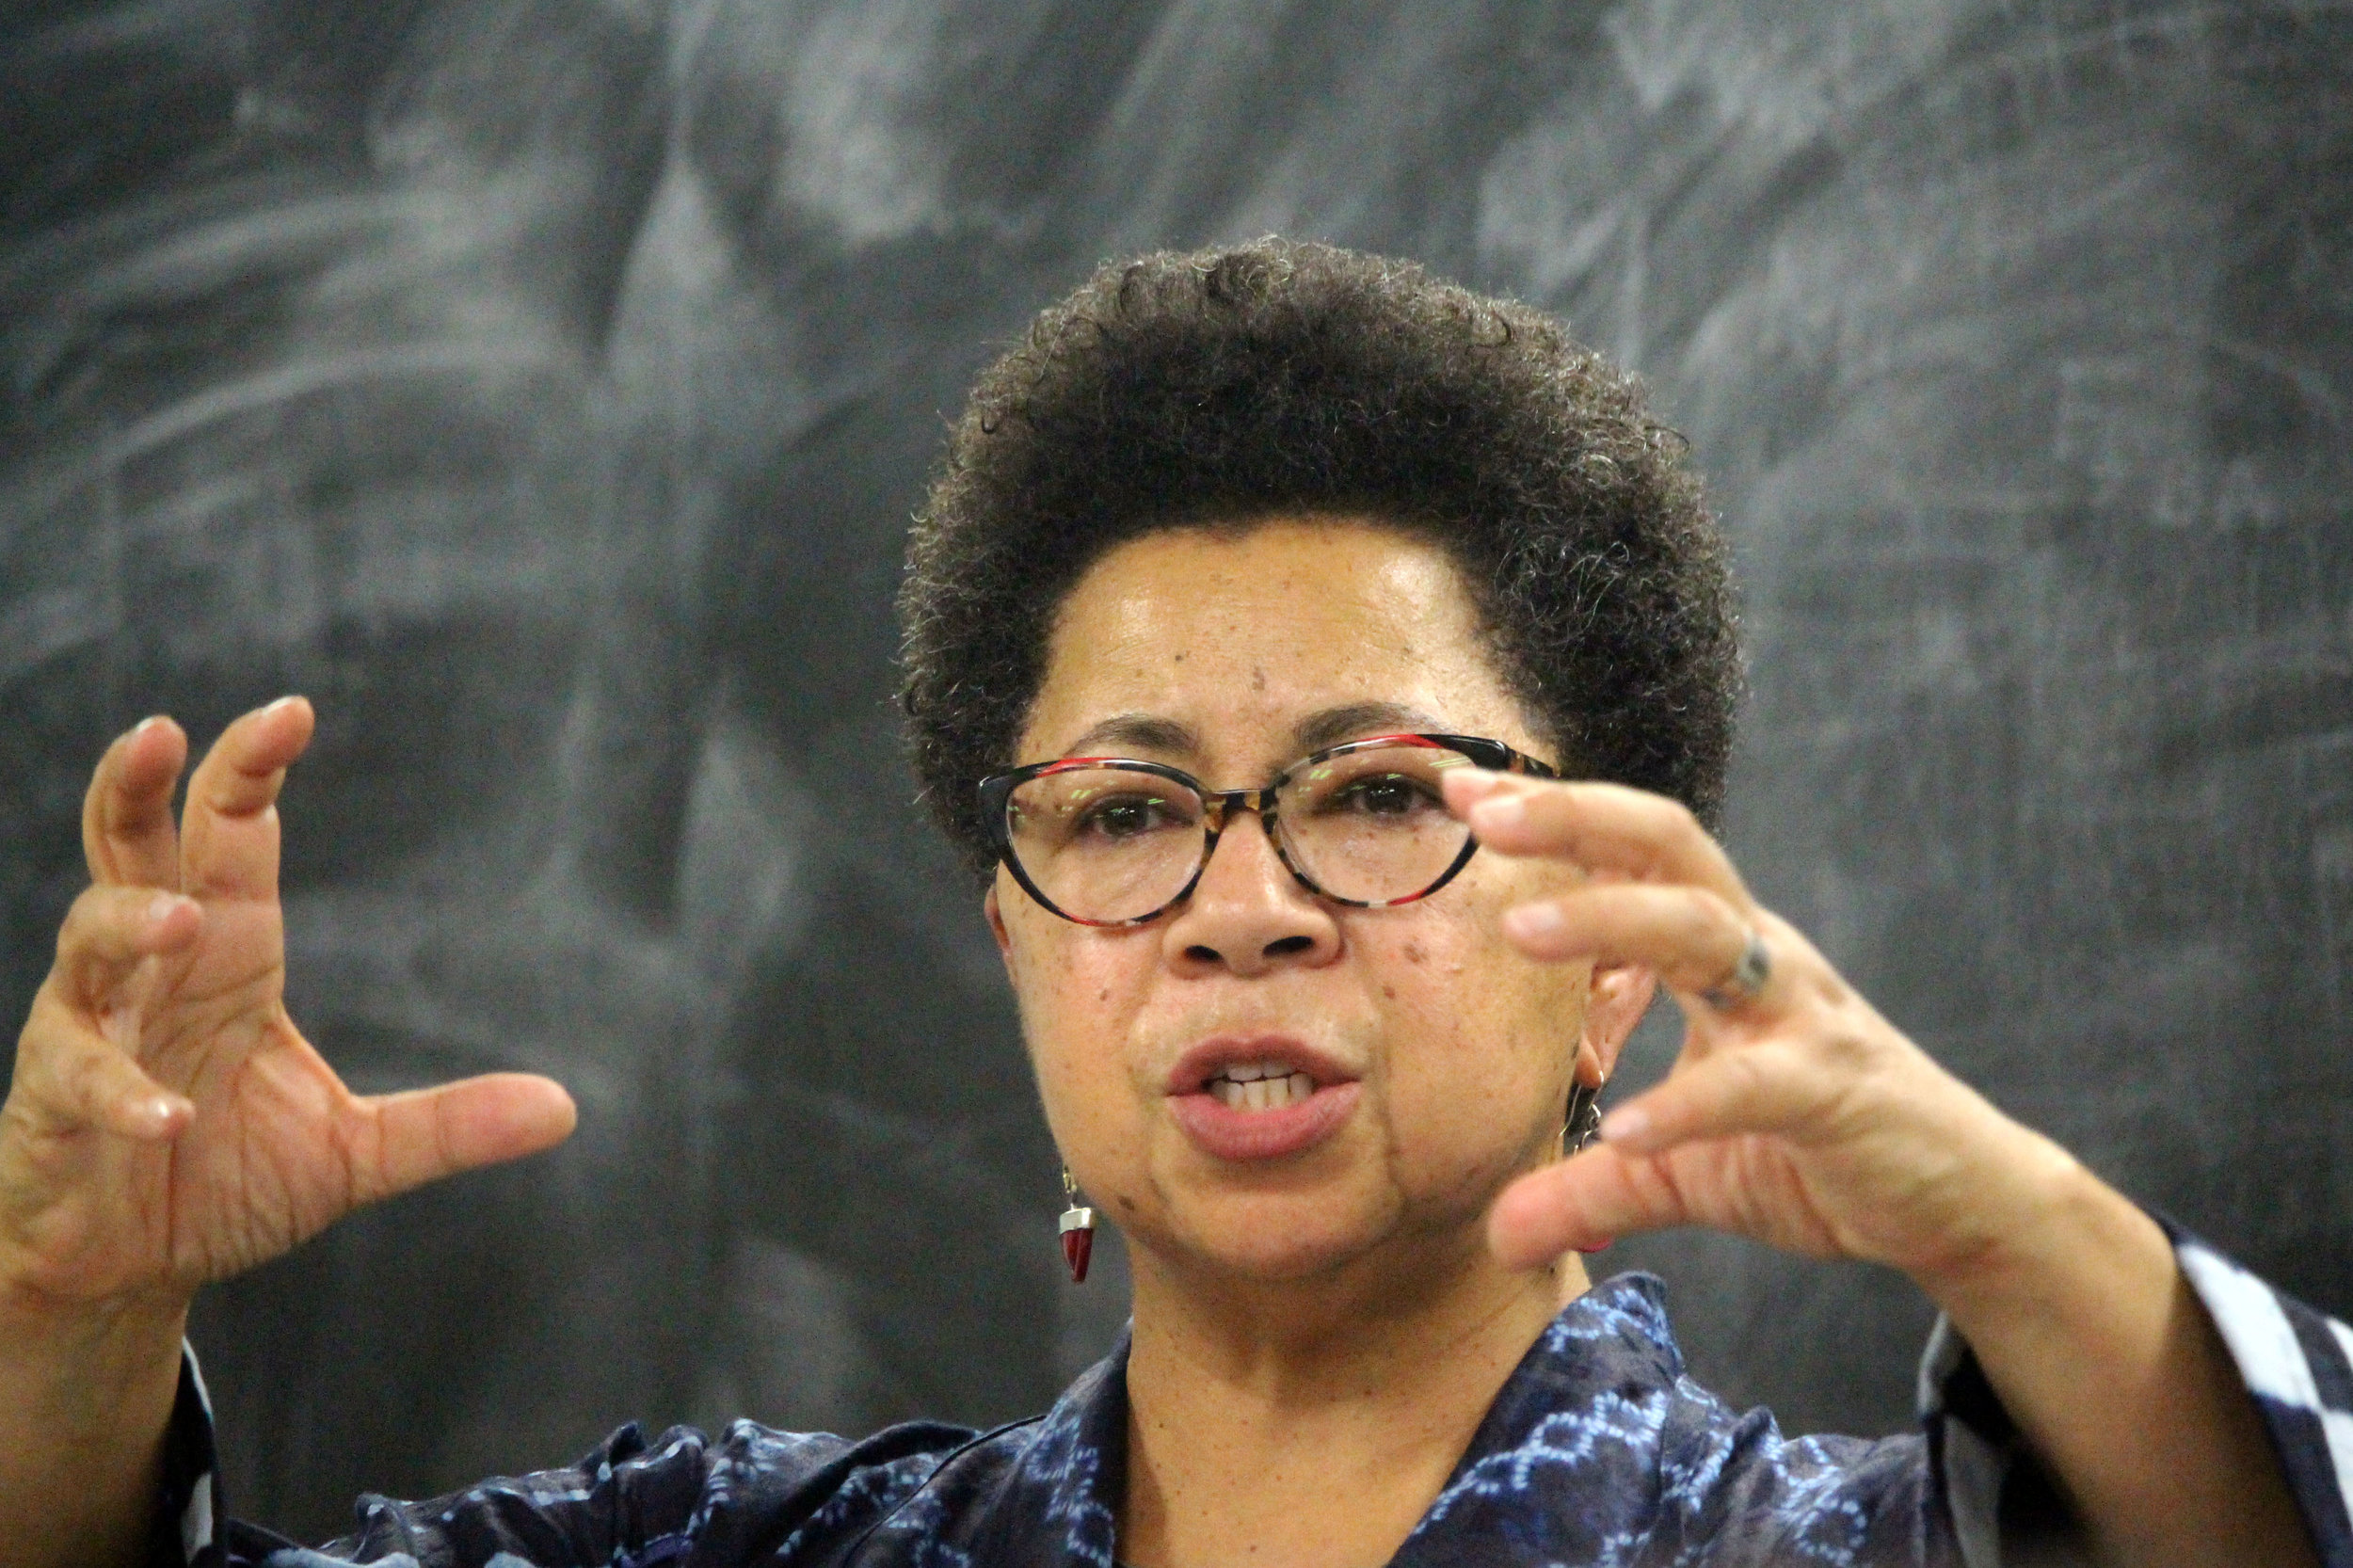 """Dr. Barbara Ransby, the award-winning author of """"Making All Black Lives Matter: Reimagining Freedom in the 21st Century,"""" highlights the importance and influence of Black women within the Black Lives Matter movement during her public seminar at Symons Hall in College Park, Md. on Monday, Dec. 3, 2018. (Alexandra Glover/The Black Explosion)"""